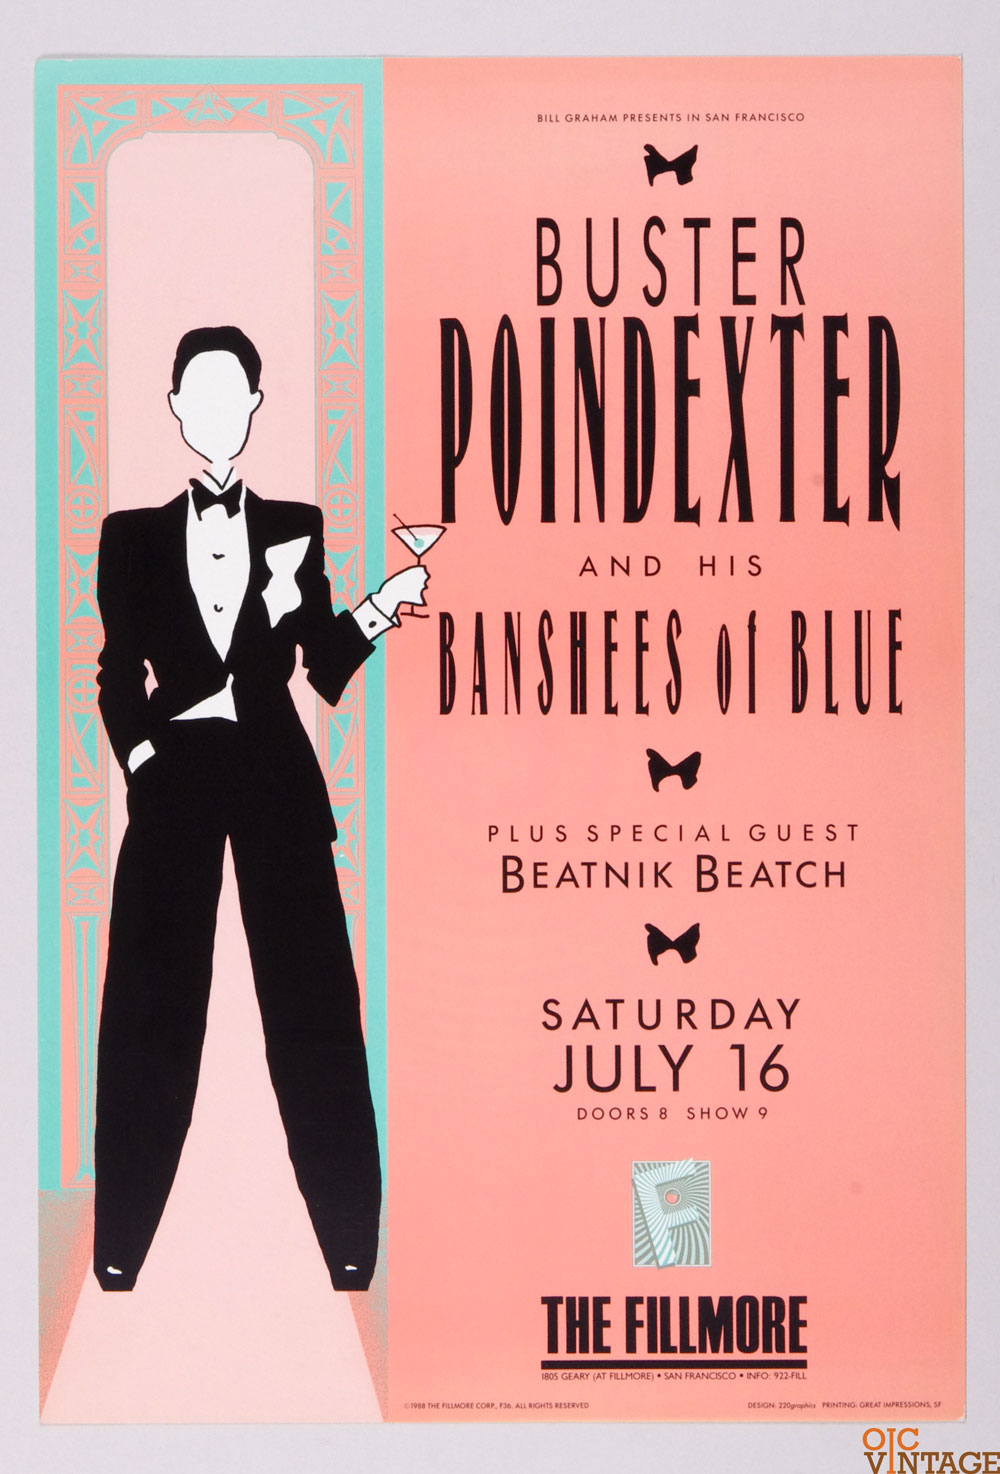 Buster Poindexter Beatnik Beatch Poster 1988 Jul 16 New Fillmore